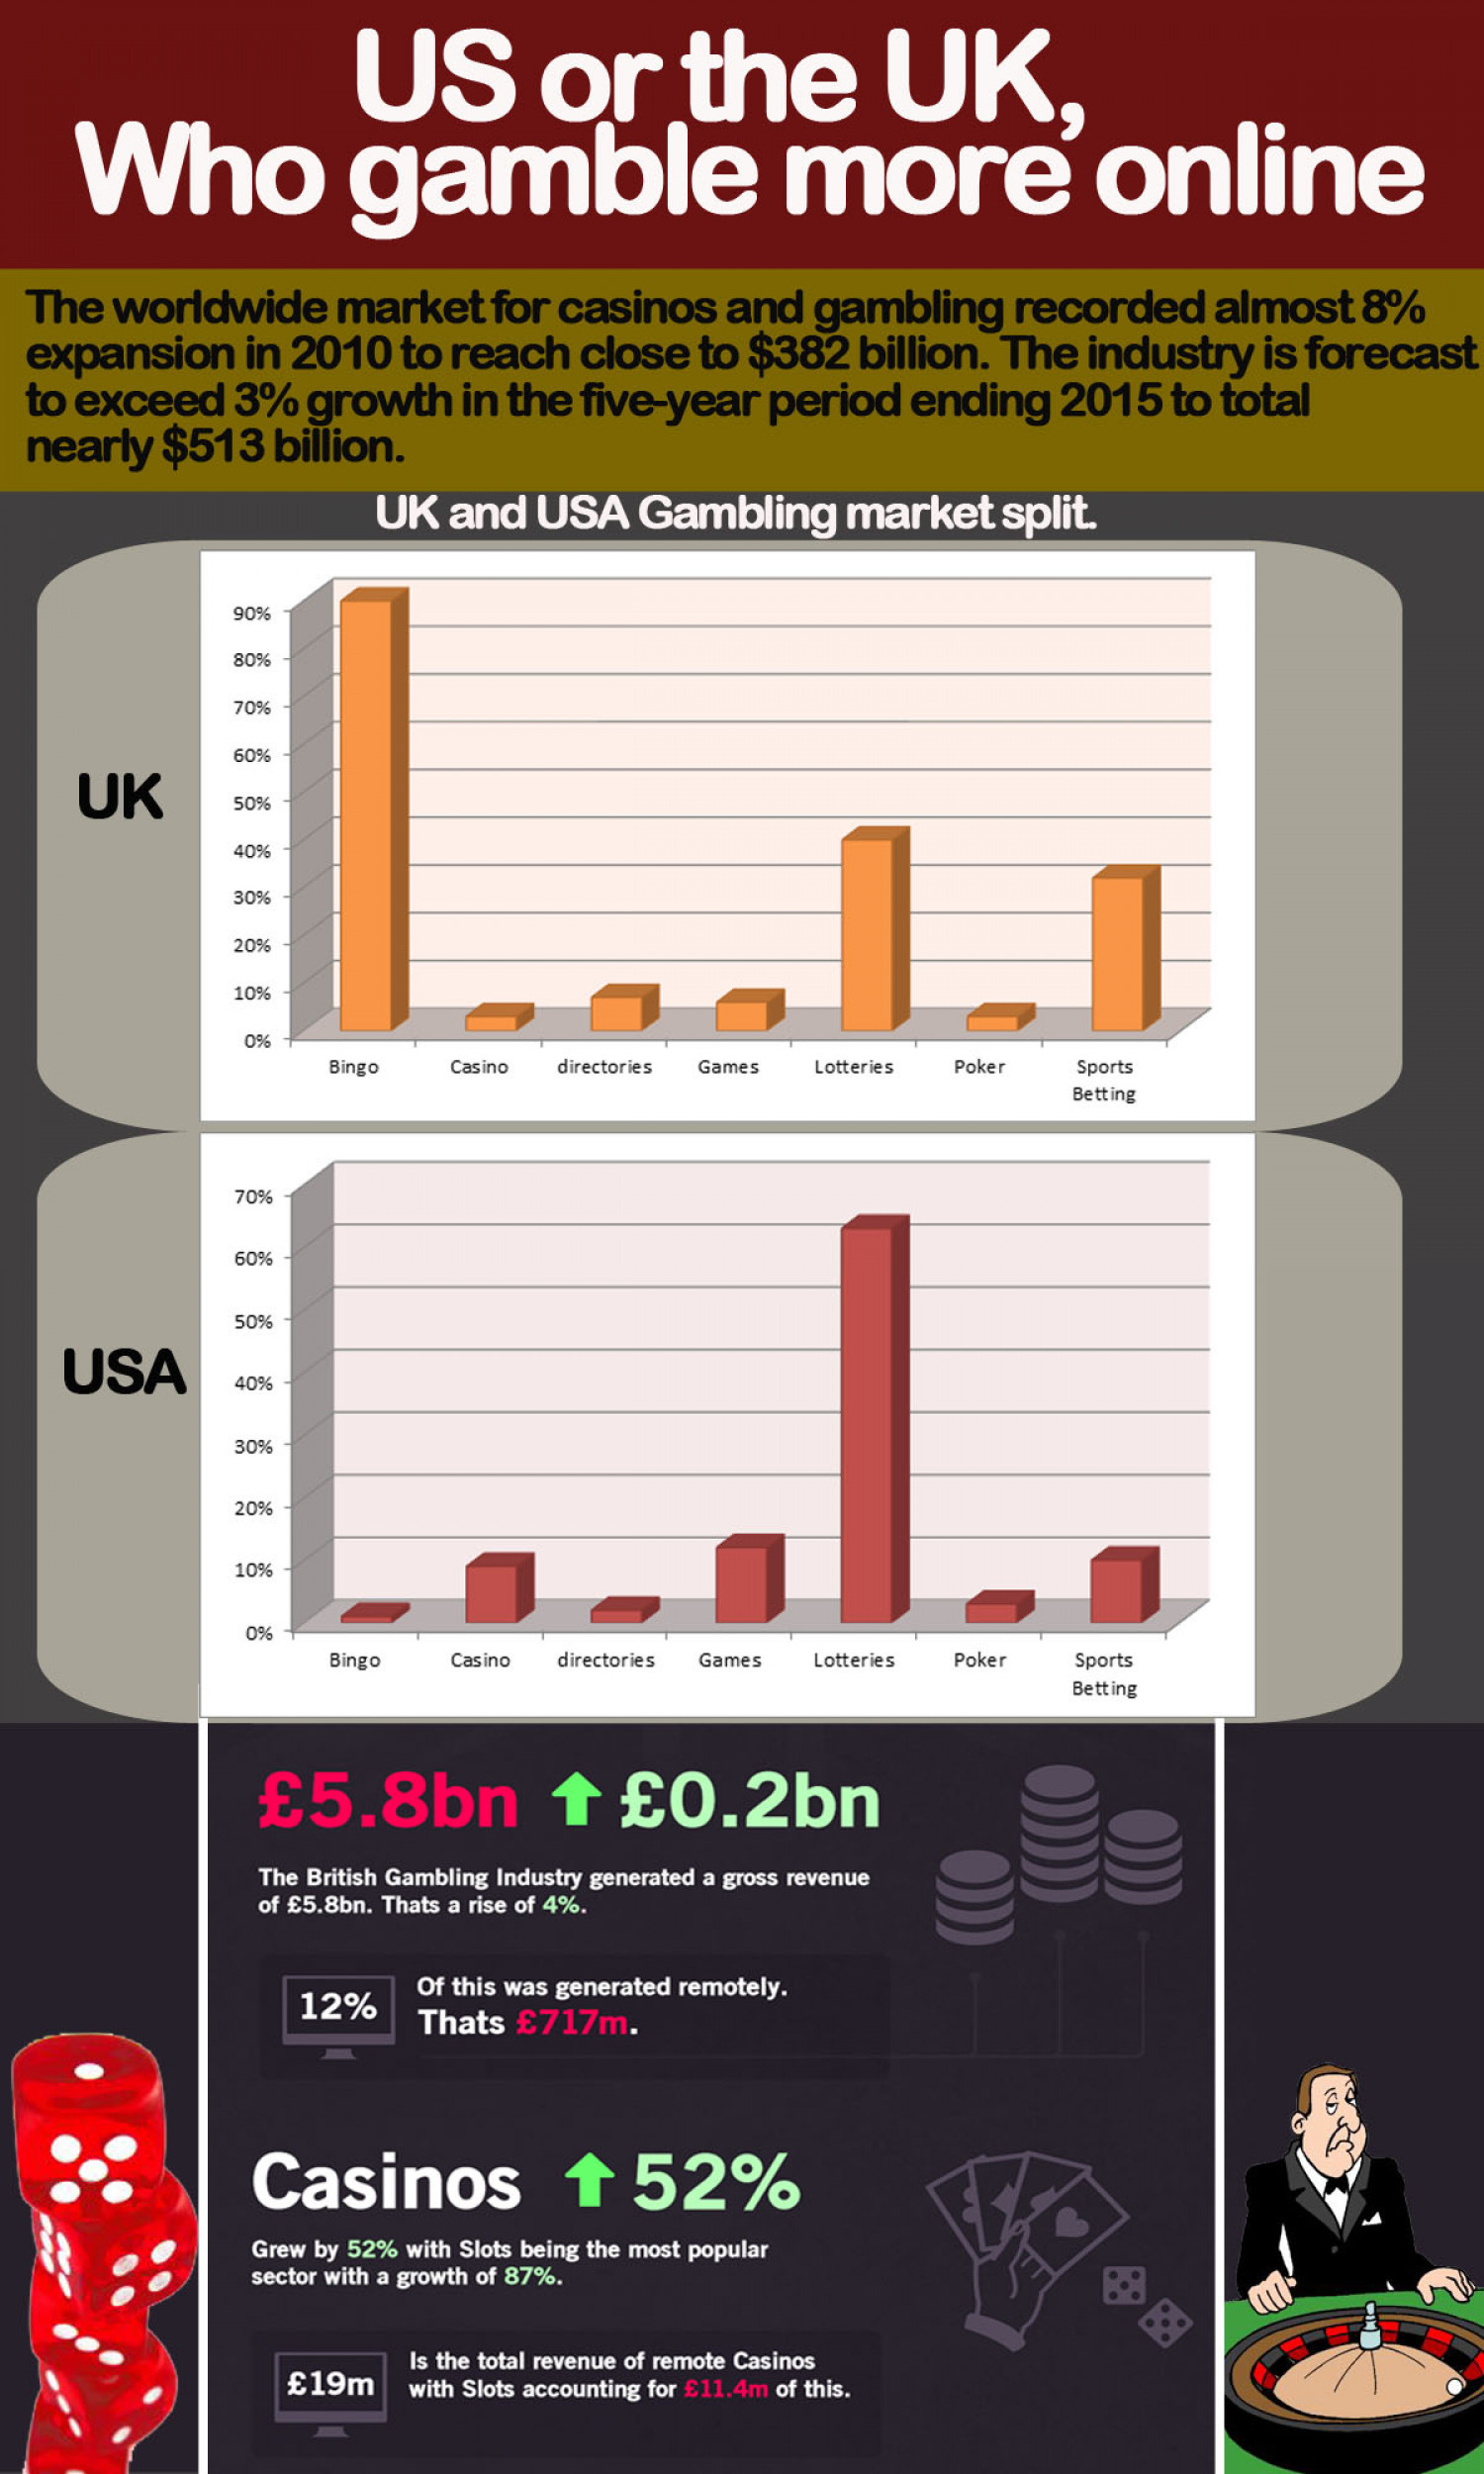 The US or The UK, Who Gamble More Online? Infographic